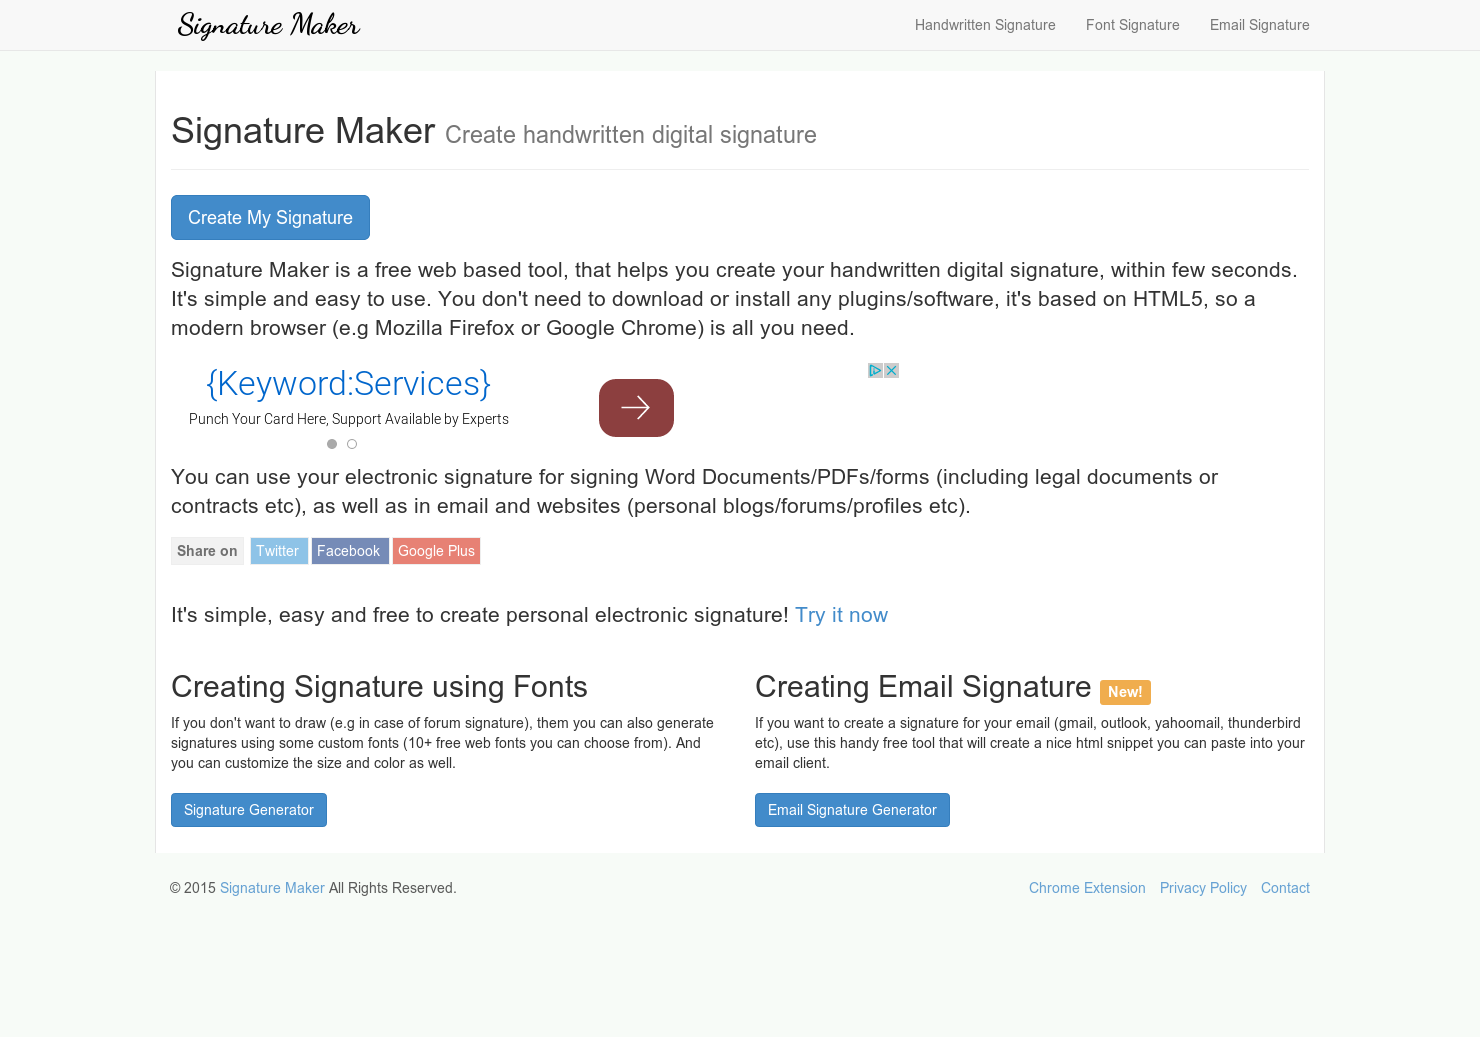 Signature Maker - Free tool that creates your handwritten